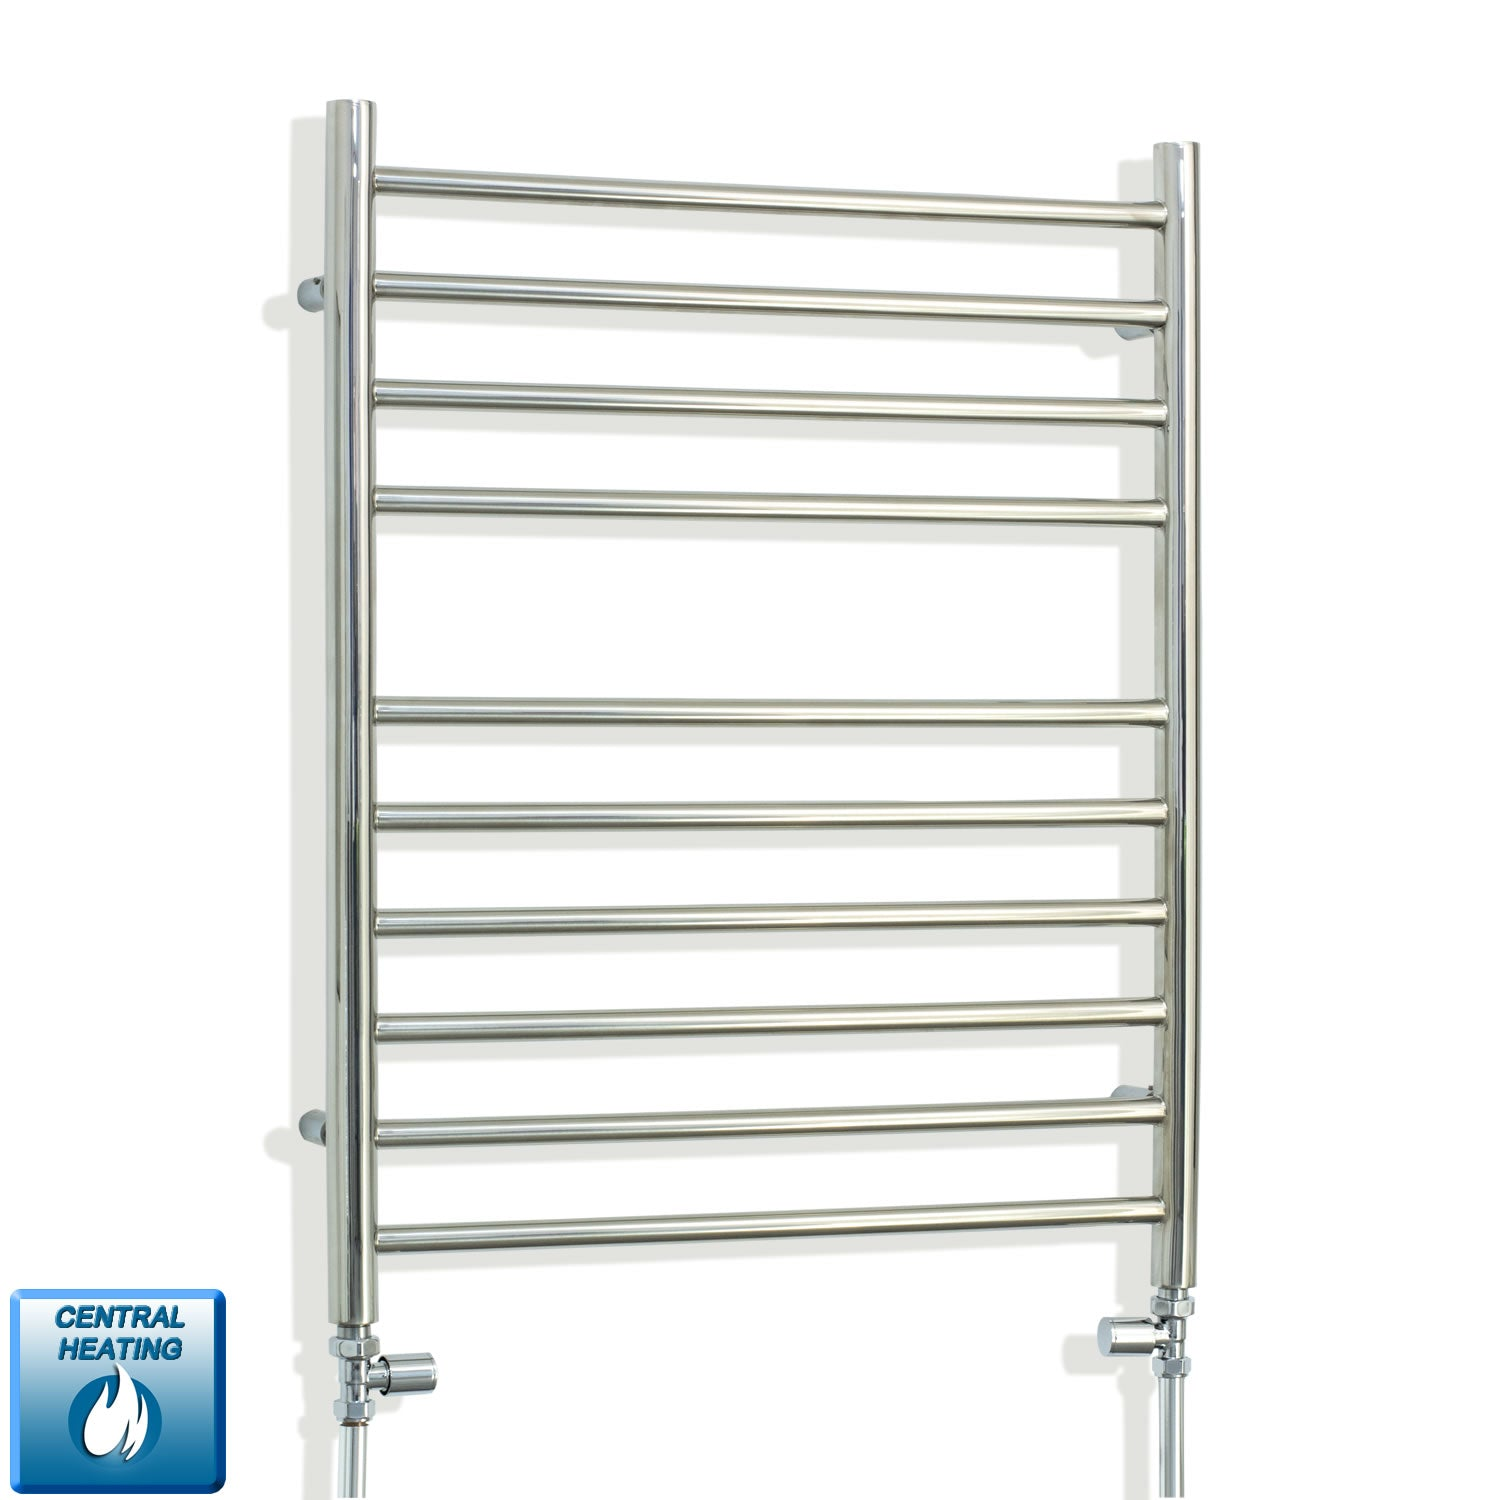 750 x 600 stainless steel towel rail radiator with straight inline valves pipes out of the floor